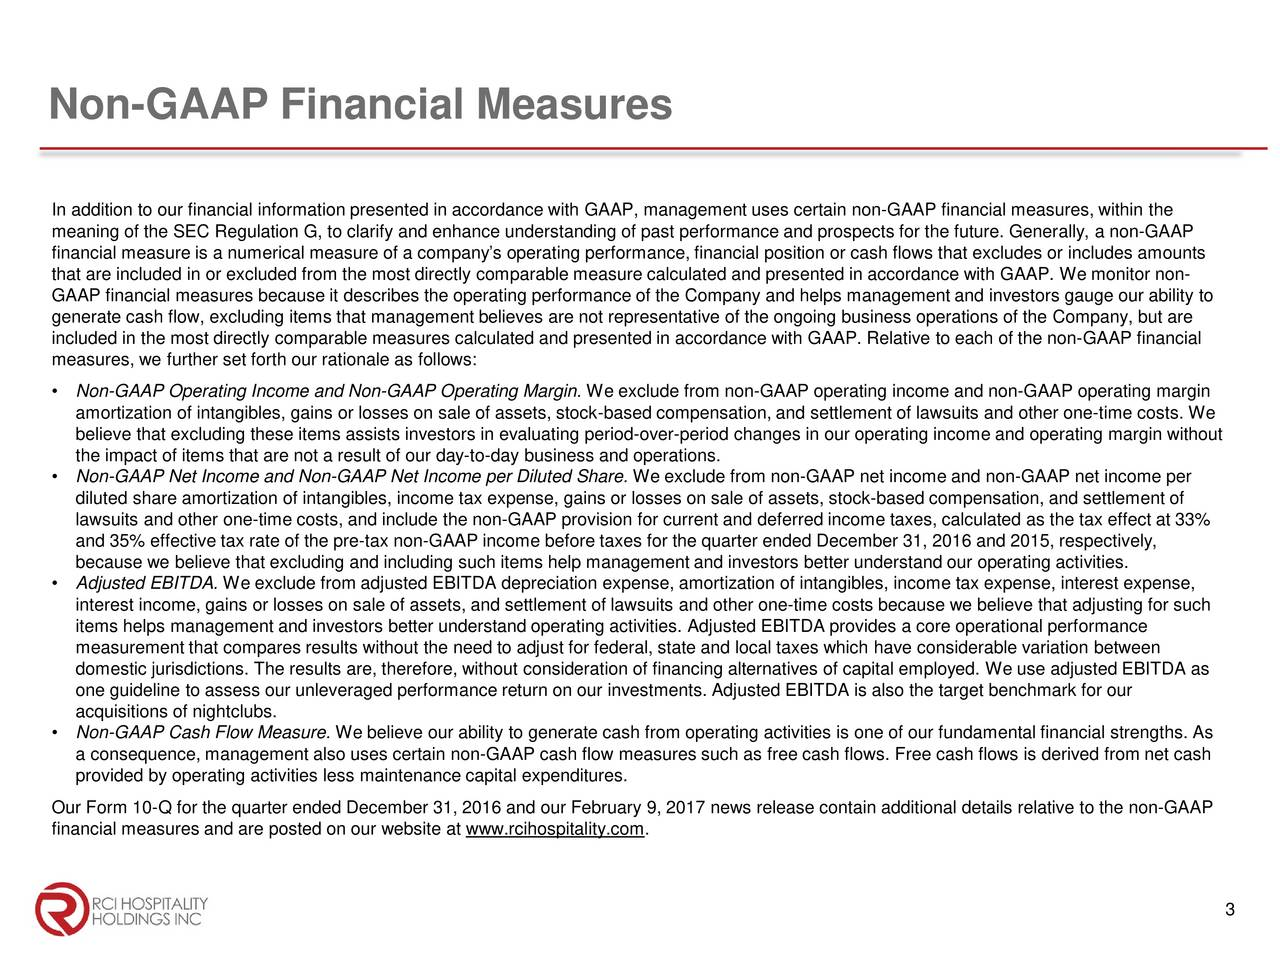 In addition to our financial information presented in accordance with GAAP, management uses certain non-GAAP financial measures, within the meaning of the SEC Regulation G, to clarify and enhance understanding of past performance and prospects for the future. Genea rlly, a non-GAAP financial measure is a numerical measure of a companys operating performance, financial position or cash flows that excludesor includes amounts that are included in or excluded from the most directly comparable measure calculated and presented in accordance with GAAPW . e monitor non- GAAP financial measures because it describes the operating performance of the Company and helps management and investors gauge our ability to generate cash flow, excluding items that management believes are not representative of the ongoing business operations of theCompany, but are included in the most directly comparable measures calculated and presented in accordance with GAAP. Relative to each of the nonG - AAP financial measures, we further set forth our rationale as follows: Non-GAAP Operating Income and Non-GAAP Operating Margin. We exclude from non-GAAP operating income and non-GAAP operating margin amortization of intangibles, gains or losses on sale of assets, stock-based compensation, and settlement of lawsuits and other onet-ime costs. We believe that excluding these items assists investors in evaluating period-over-period changes in our operating income and operating margin without the impact of items that are not a result of our day-to-day business and operations. Non-GAAP Net Income and Non-GAAP Net Income per Diluted Share. We exclude from non-GAAP net income and non-GAAP net income per diluted share amortization of intangibles, income tax expense, gainsor losses on sale of assets, stock-based compensation, and settlement of lawsuits and other one-time costs, and include the non-GAAP provision for current and deferred income taxes, calculated as the tax effect at 33% and 35% effective tax rat